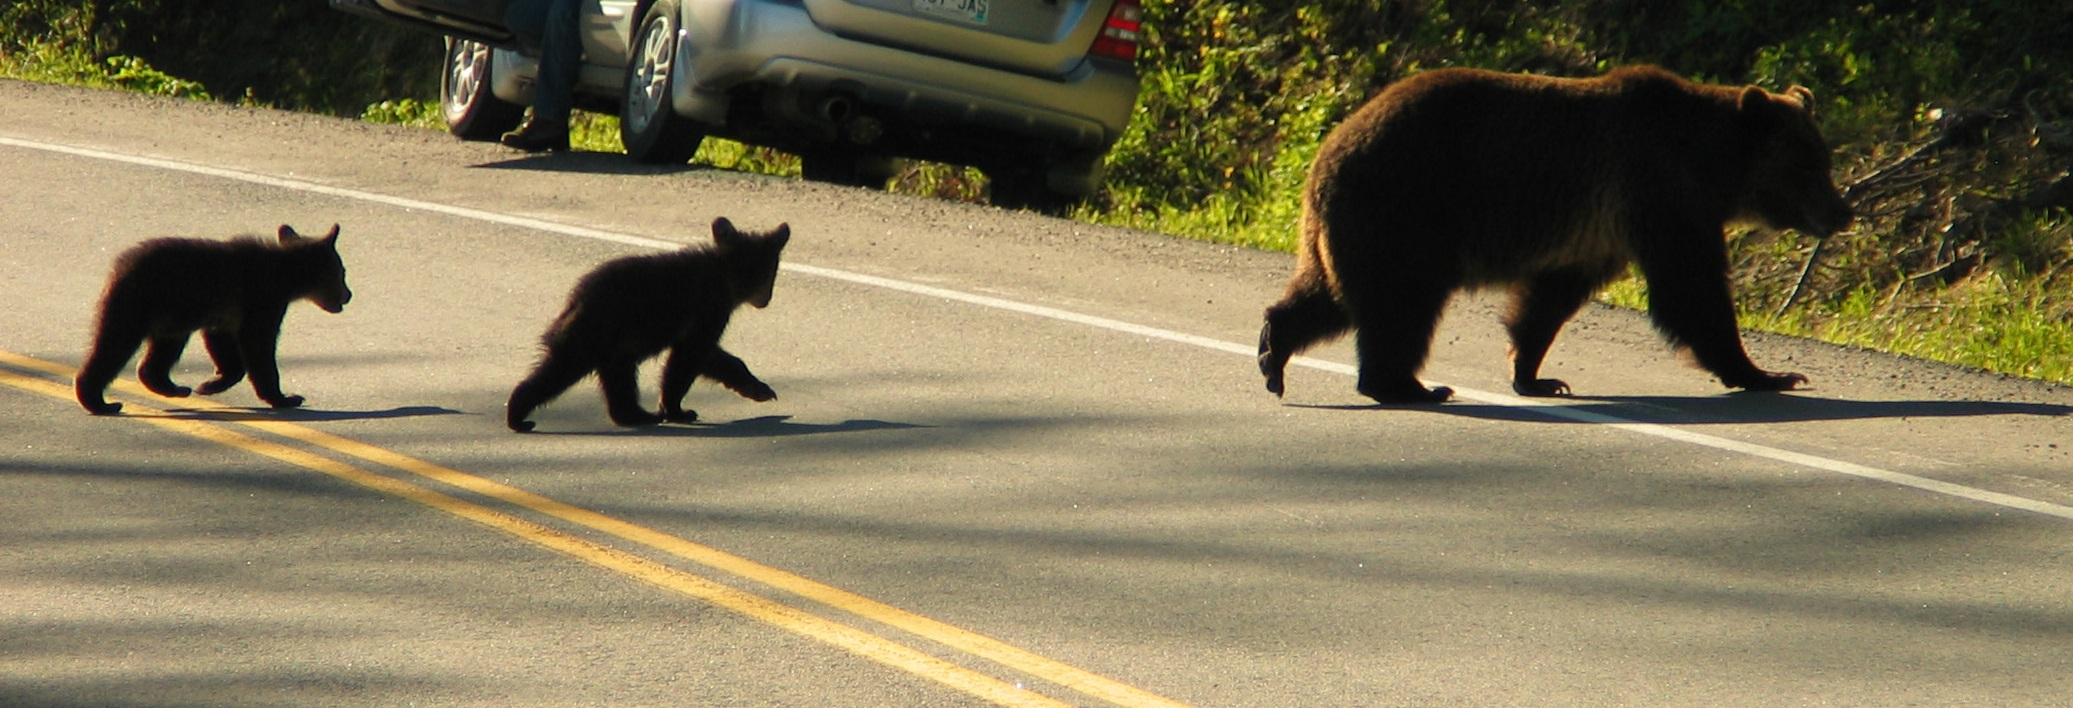 A mother grizzly and her cubs crossing a busy road. (Photo Len Trout.)